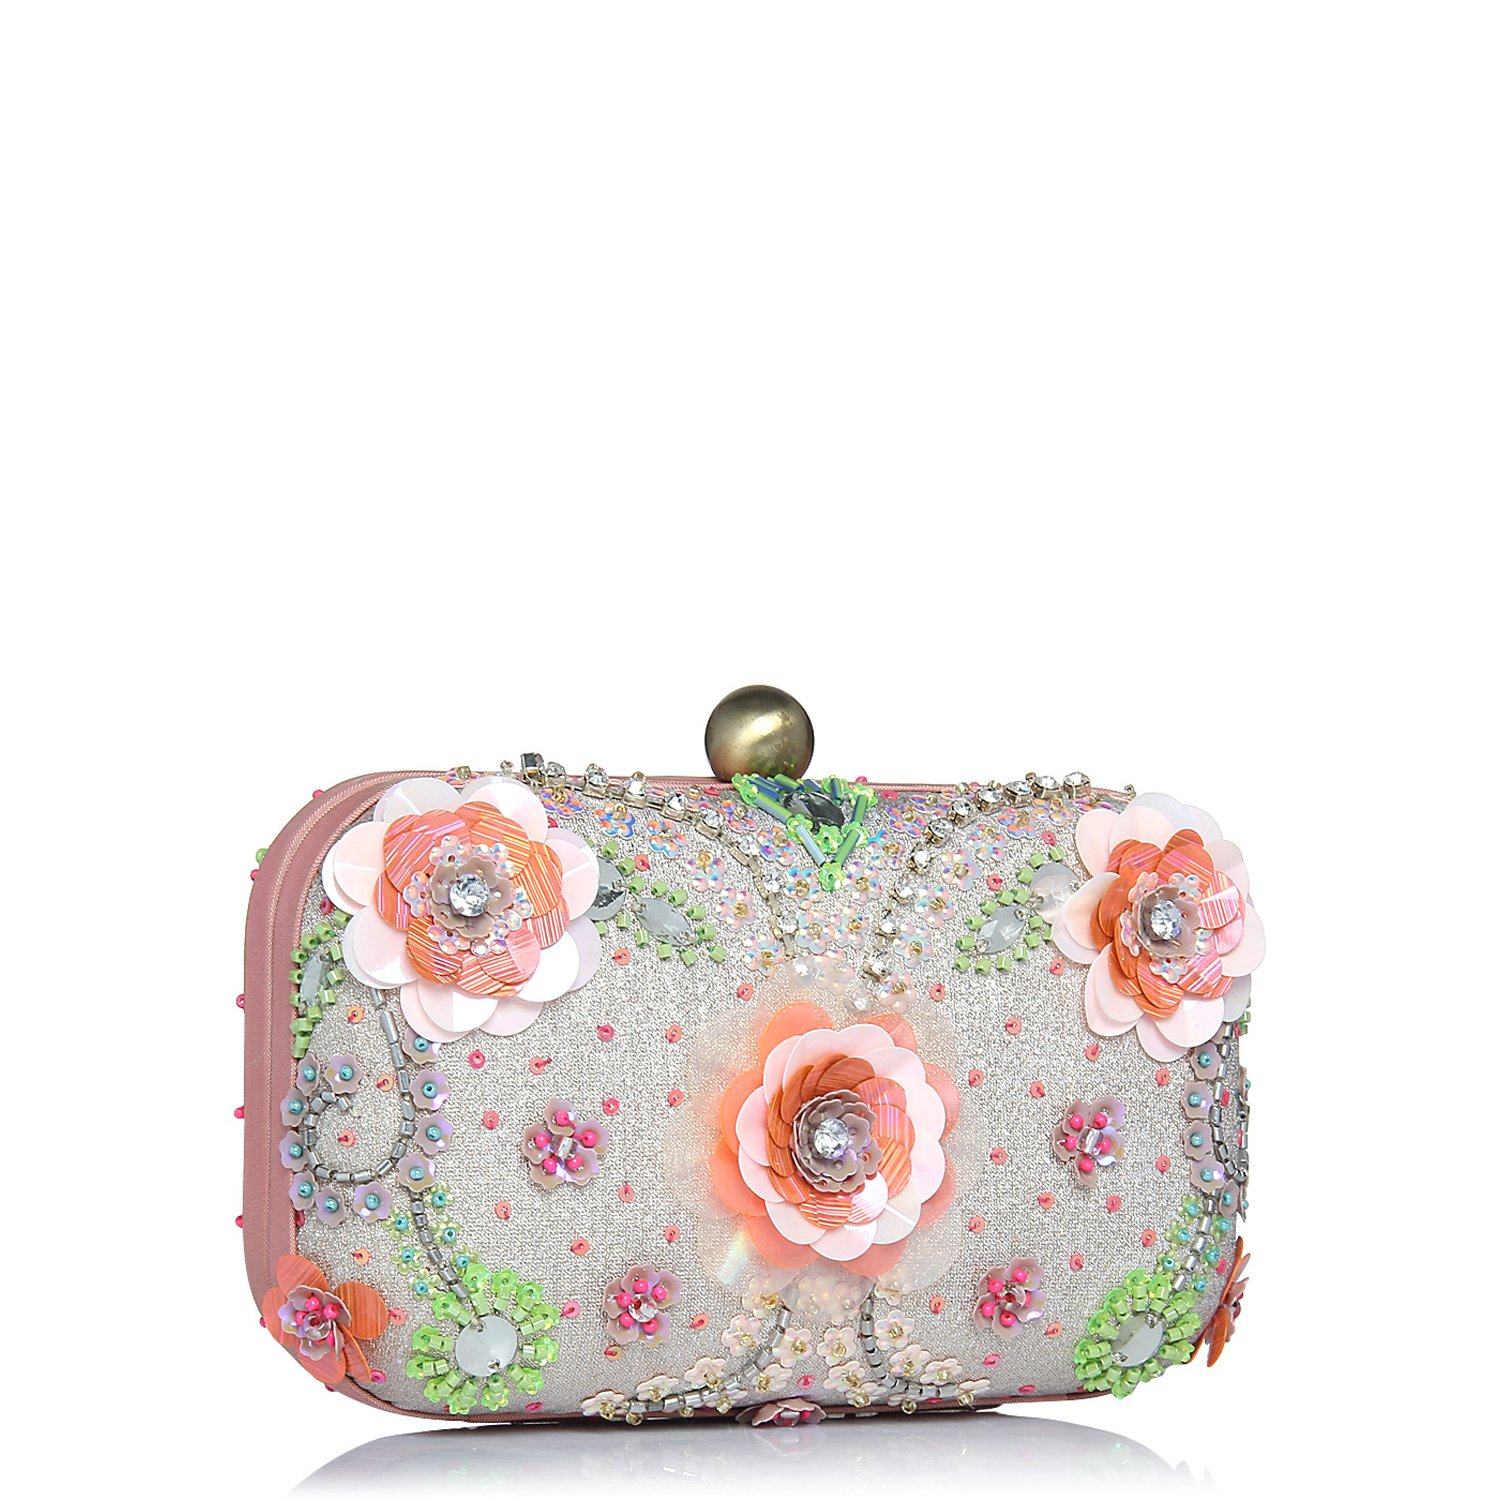 Clutches for Women hard box framed hand embroidered Day to Evening clutch by Monokrome New York